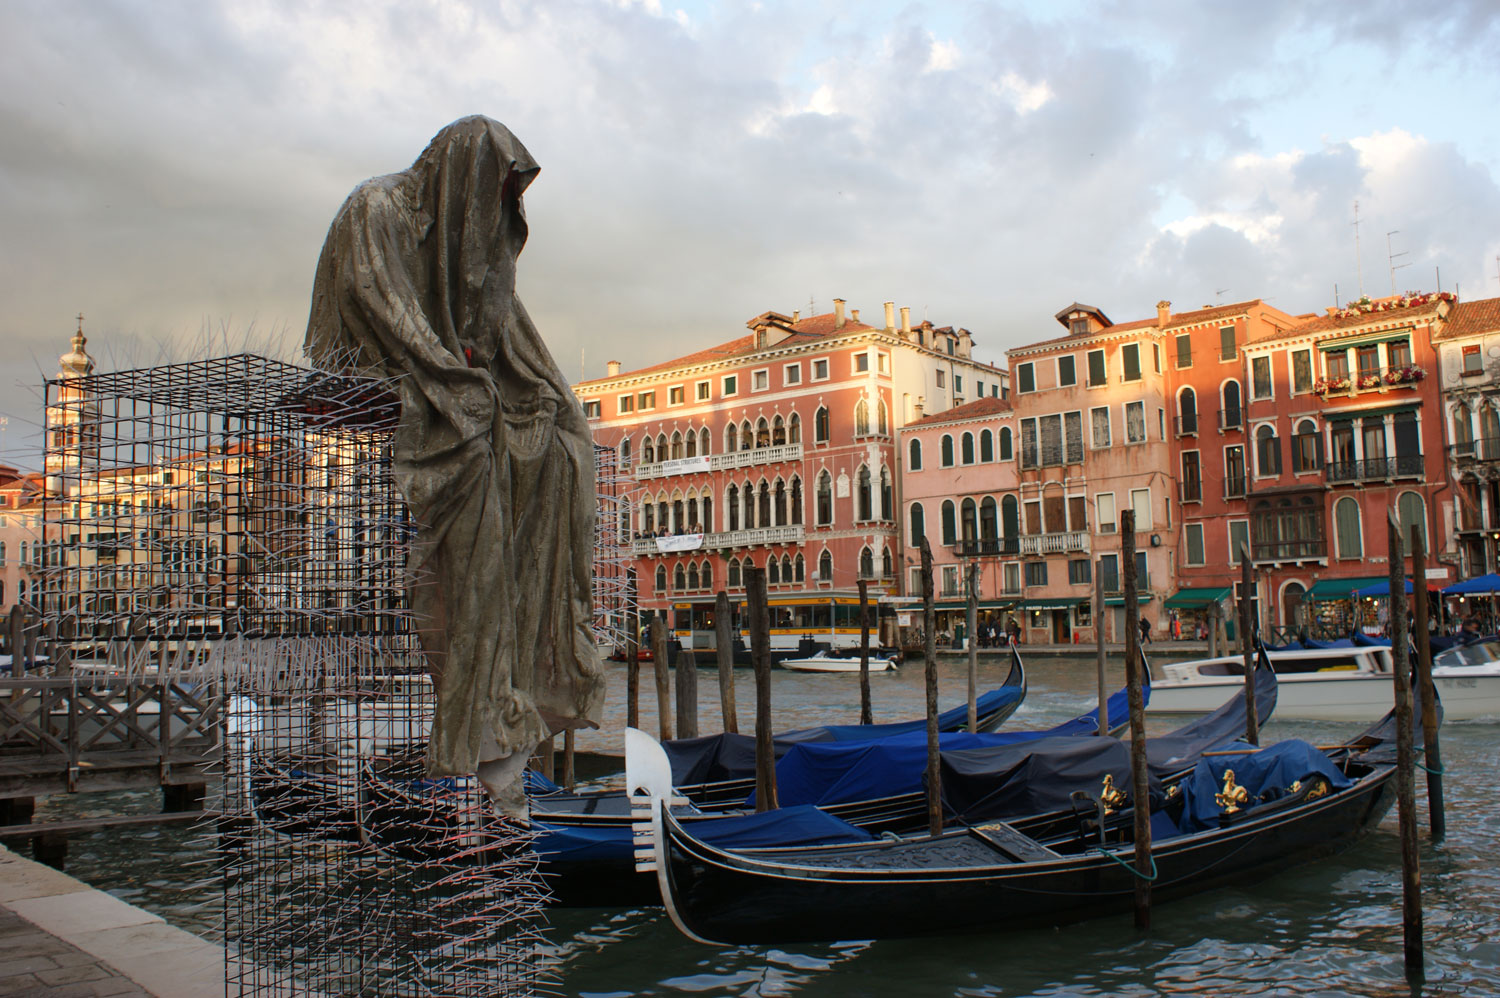 Public venice art biennial t guardians by christoph for Artisti biennale venezia